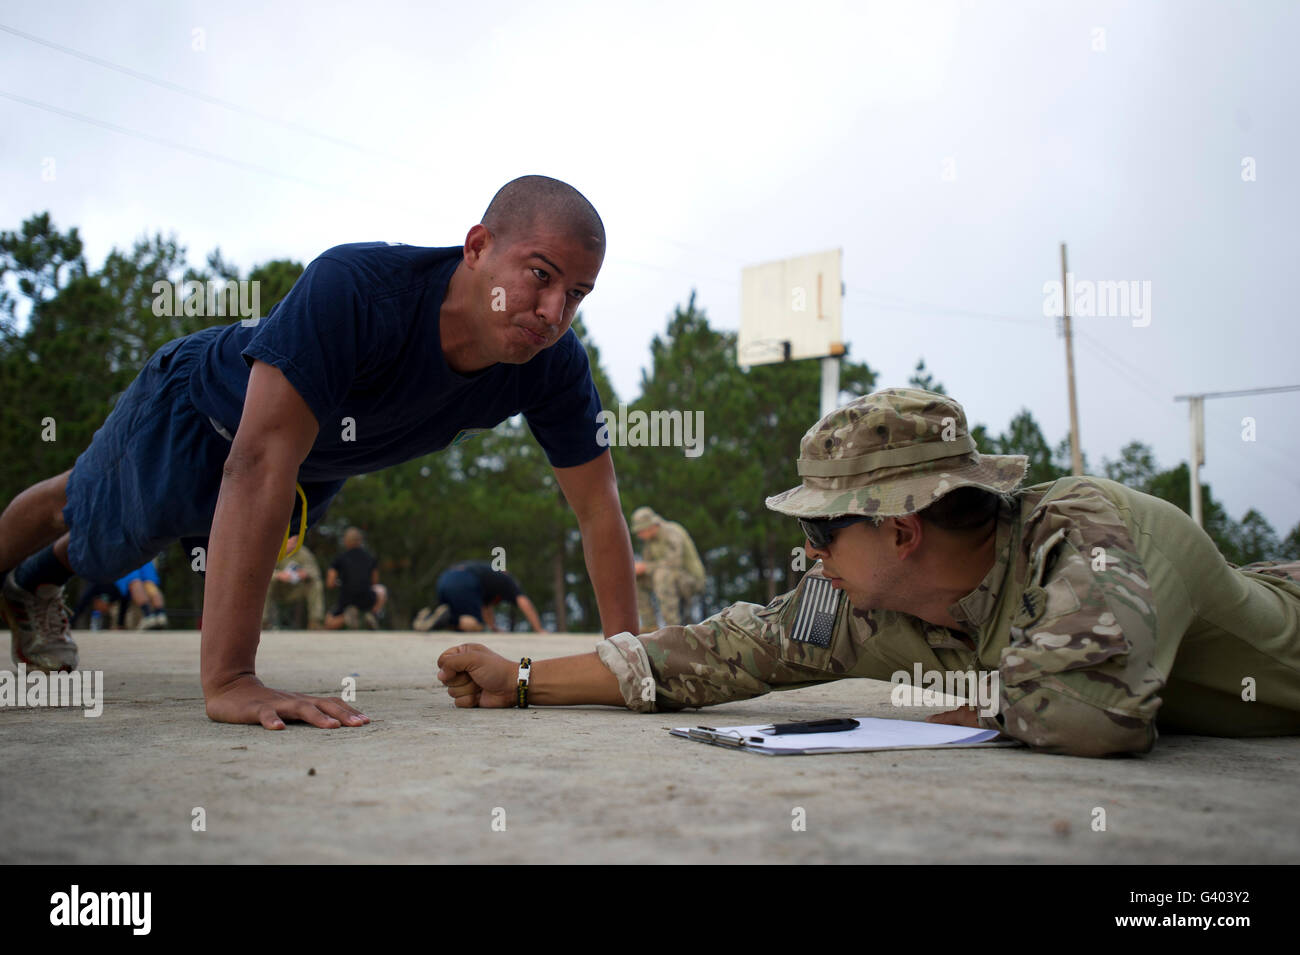 A TIGRES commando conducts push-ups in front of a Green Beret. - Stock Image